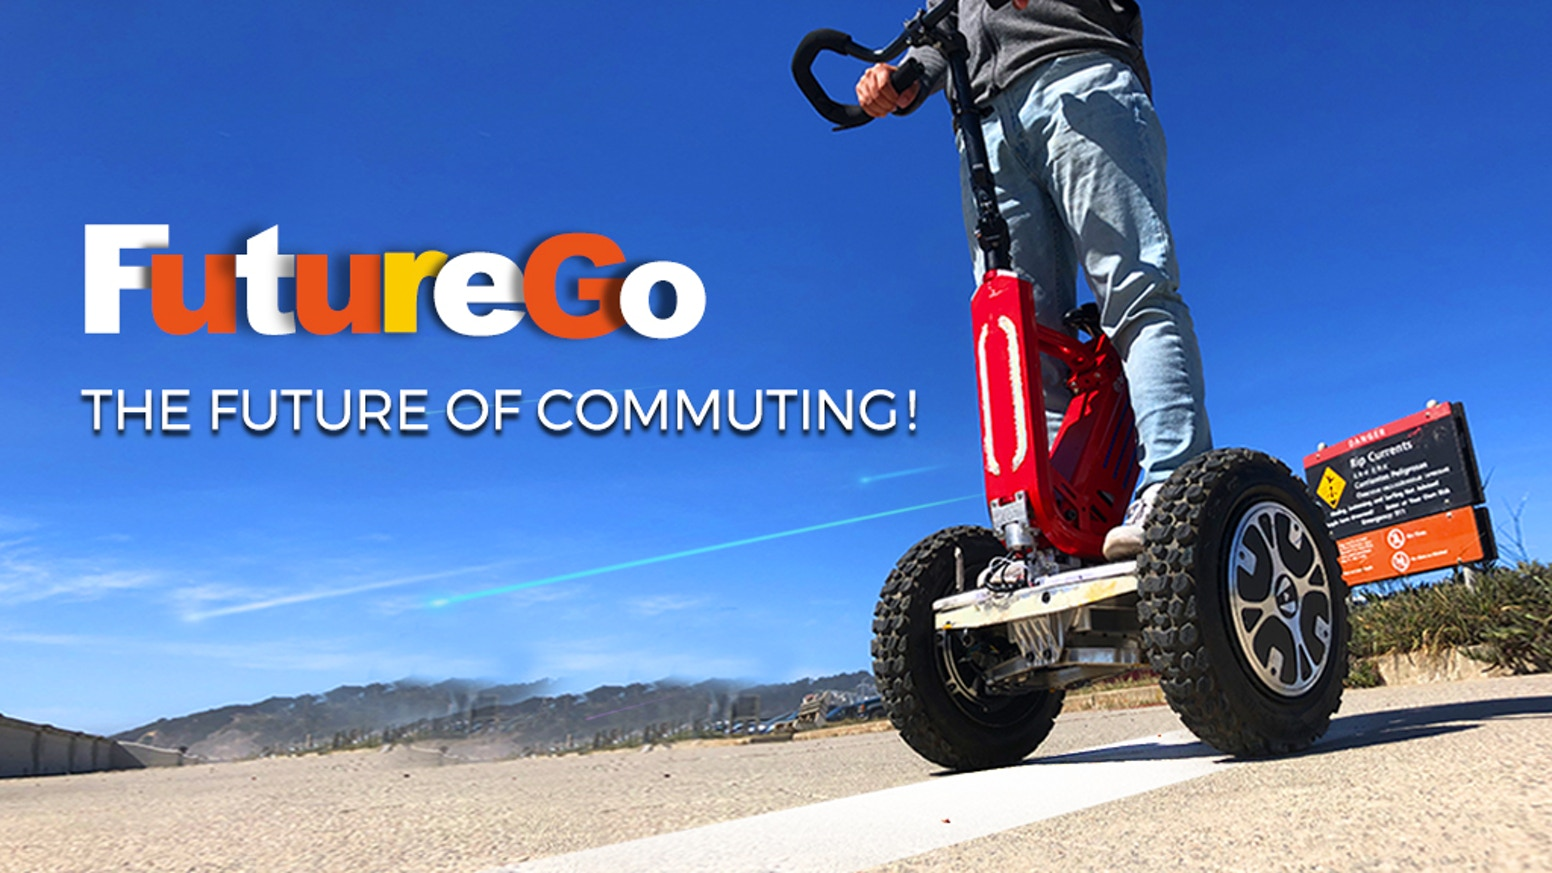 The world's smartest eco-friendly all-terrain self-balancing electric scooter with automotive technology. The future of commuting!